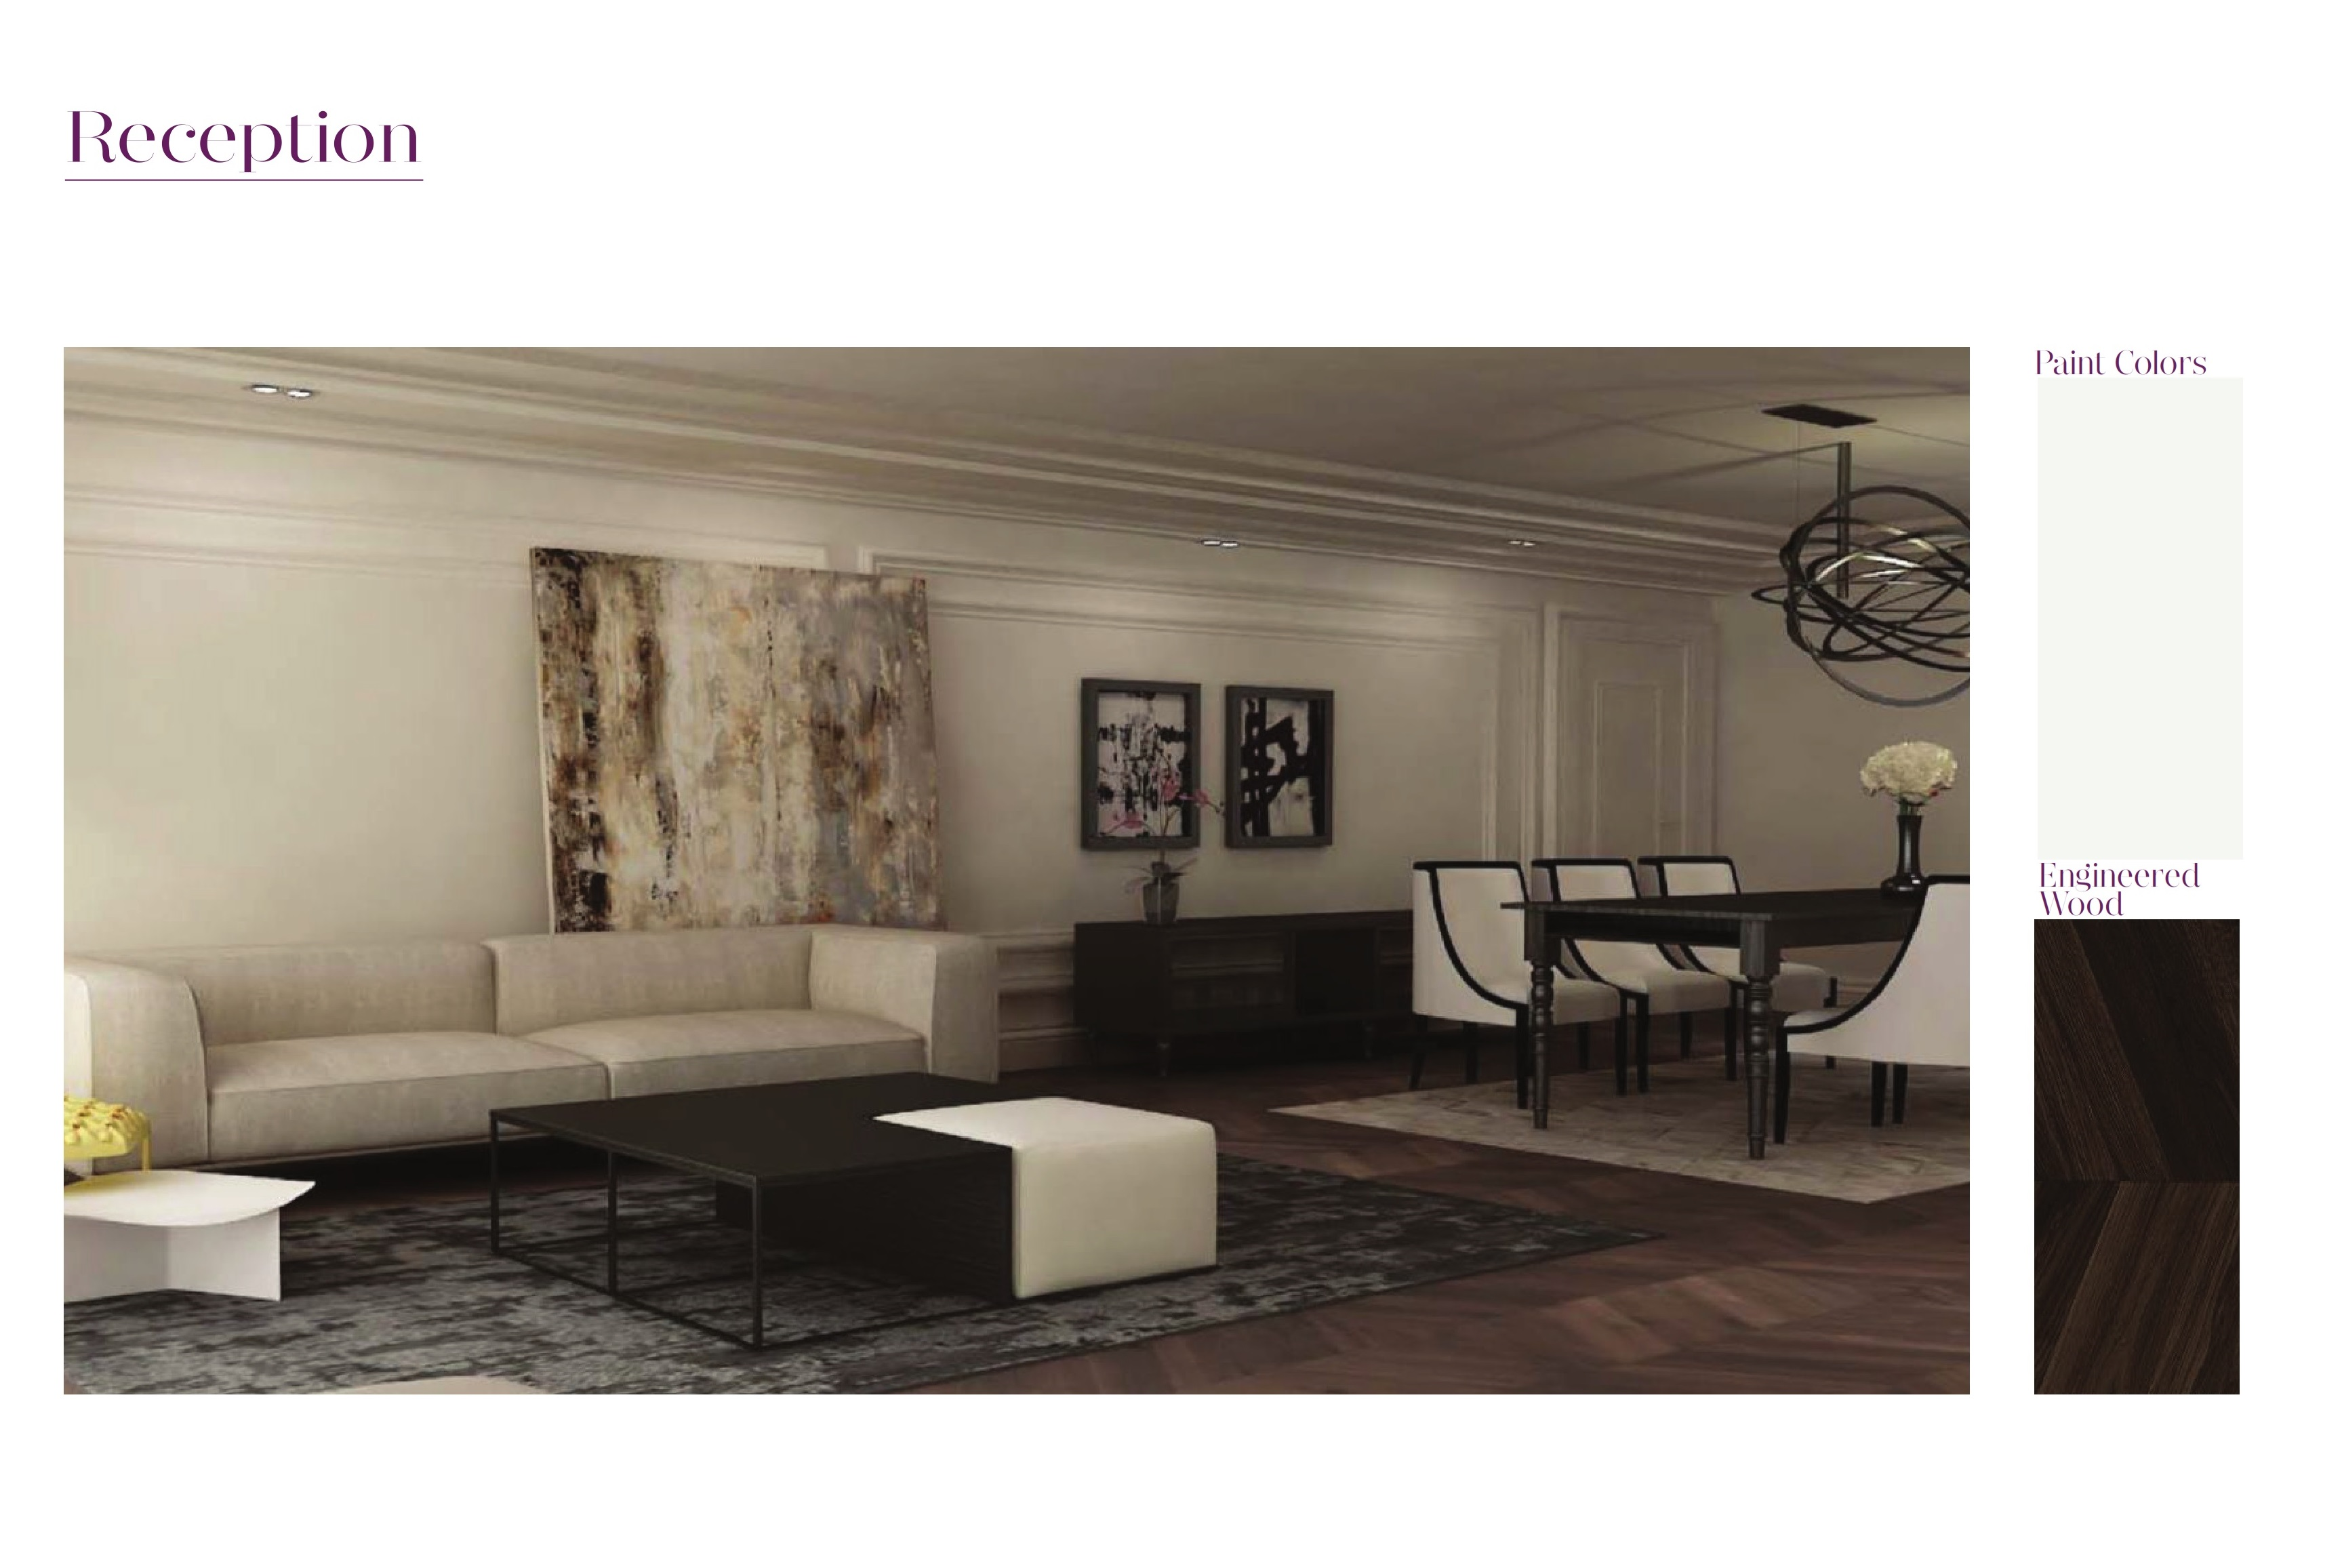 614-penthouse-3-bedrooms-a